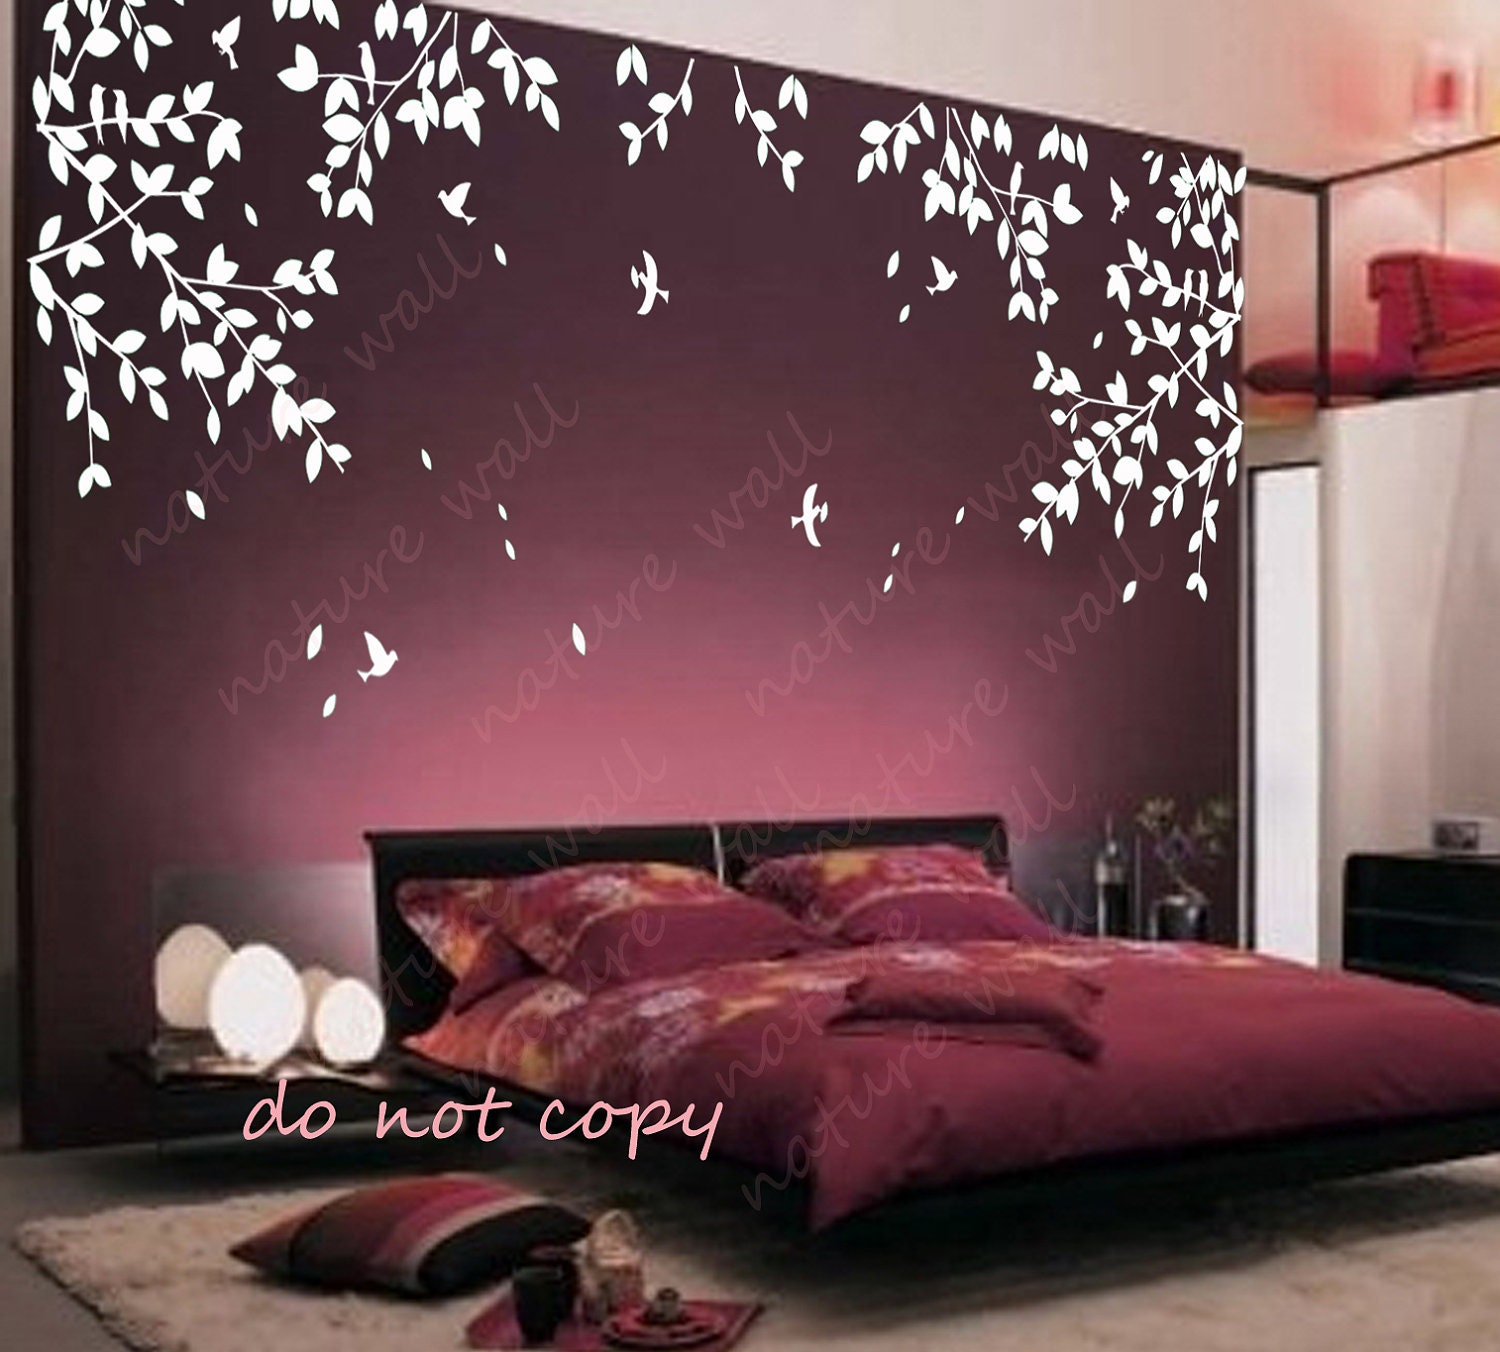 Wall decor made from branches interior decorating for Decor mural wall art